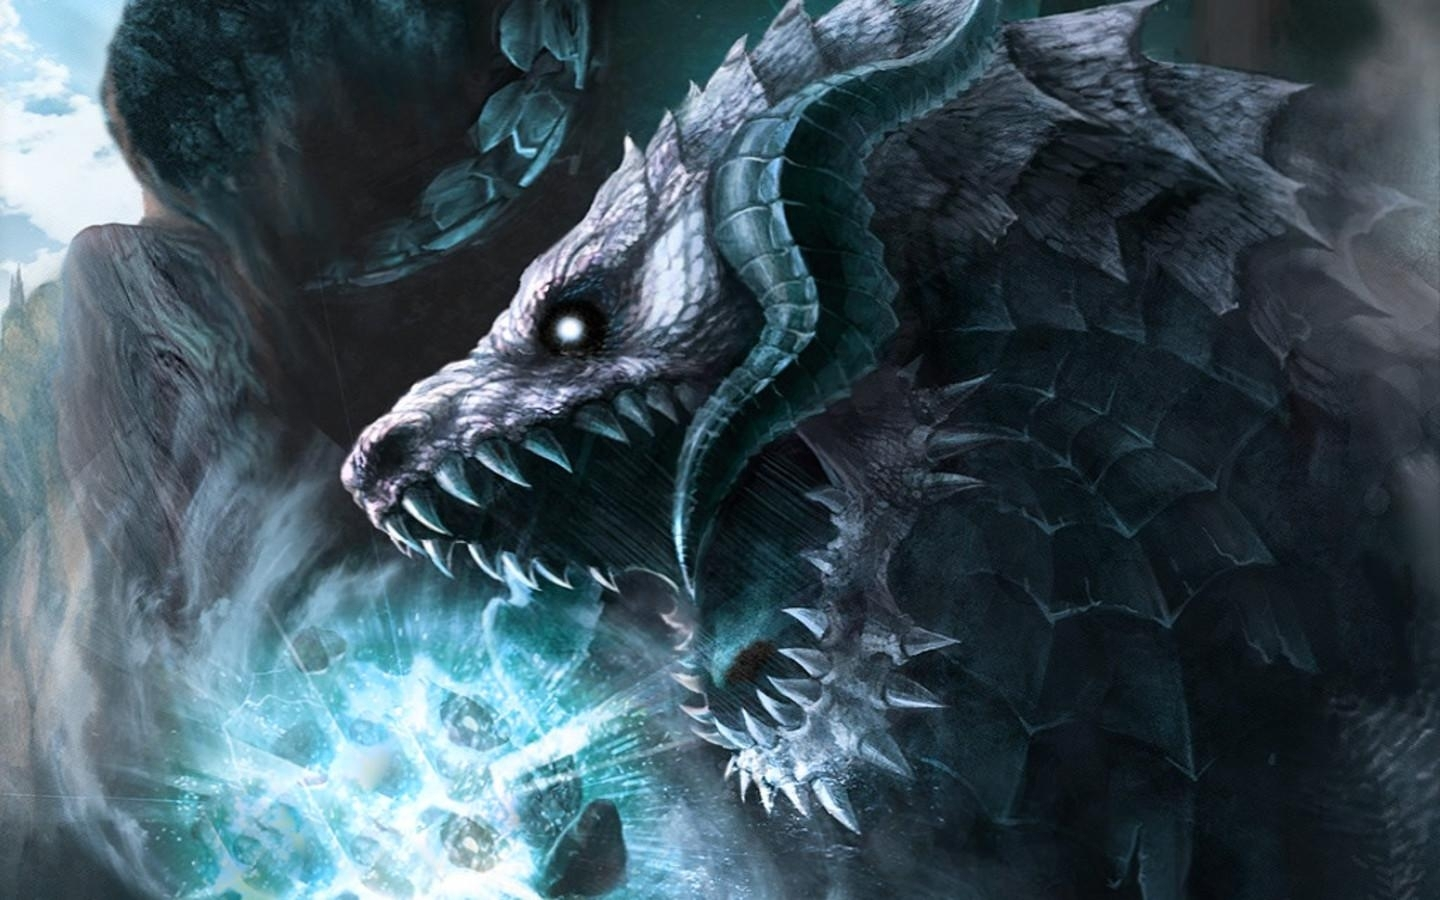 Free Ice Dragon Wallpapers Desktop At Abstract Monodomo Mythical Ice Dragon 140003 Hd Wallpaper Backgrounds Download